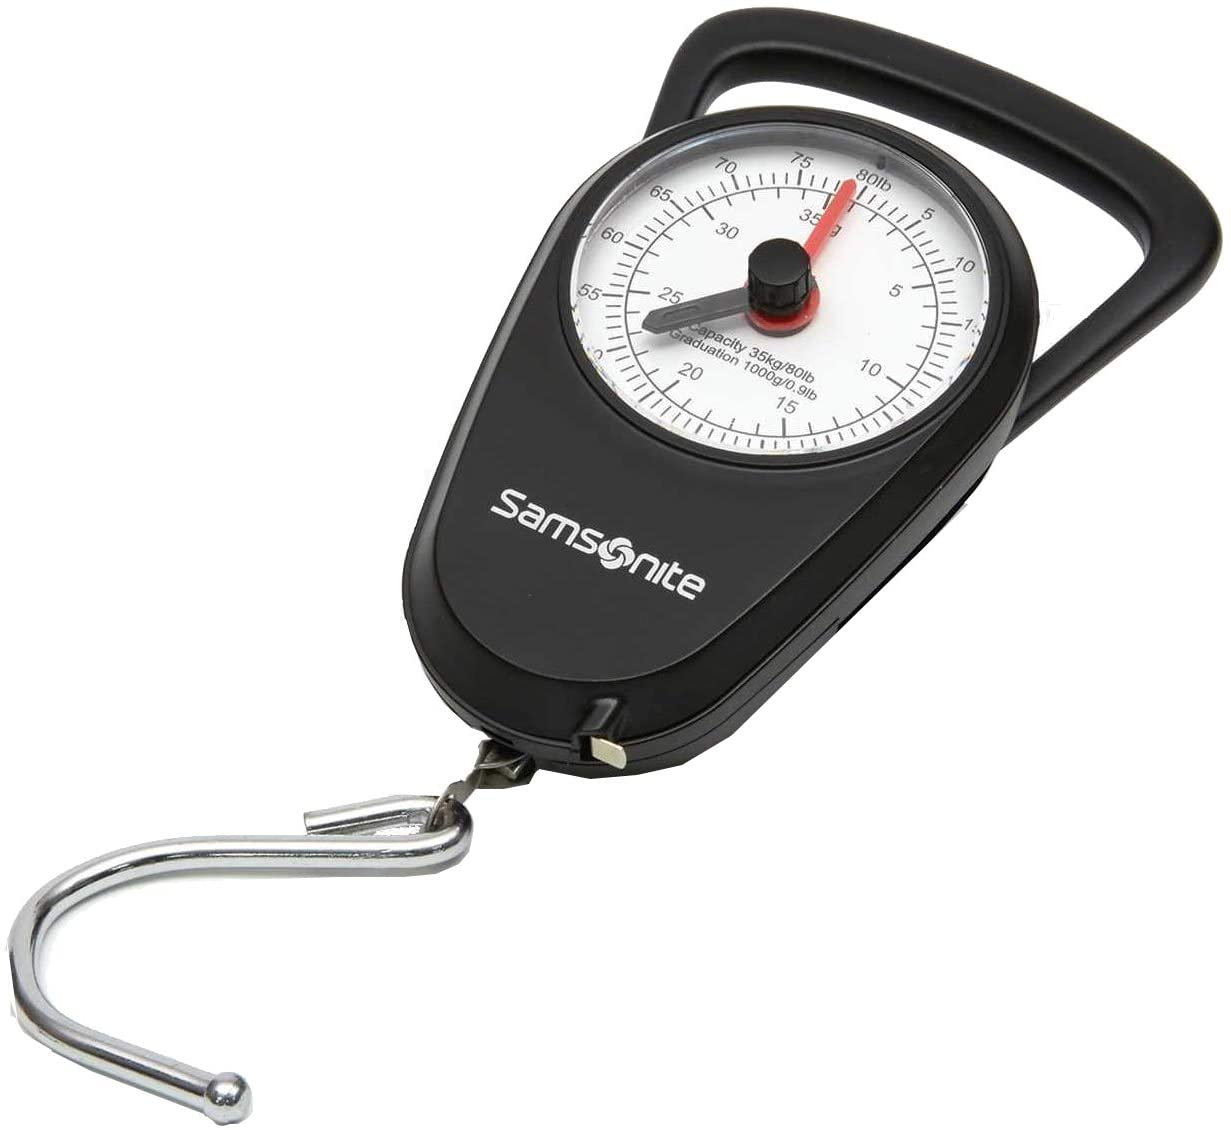 luggage-scale-reviews